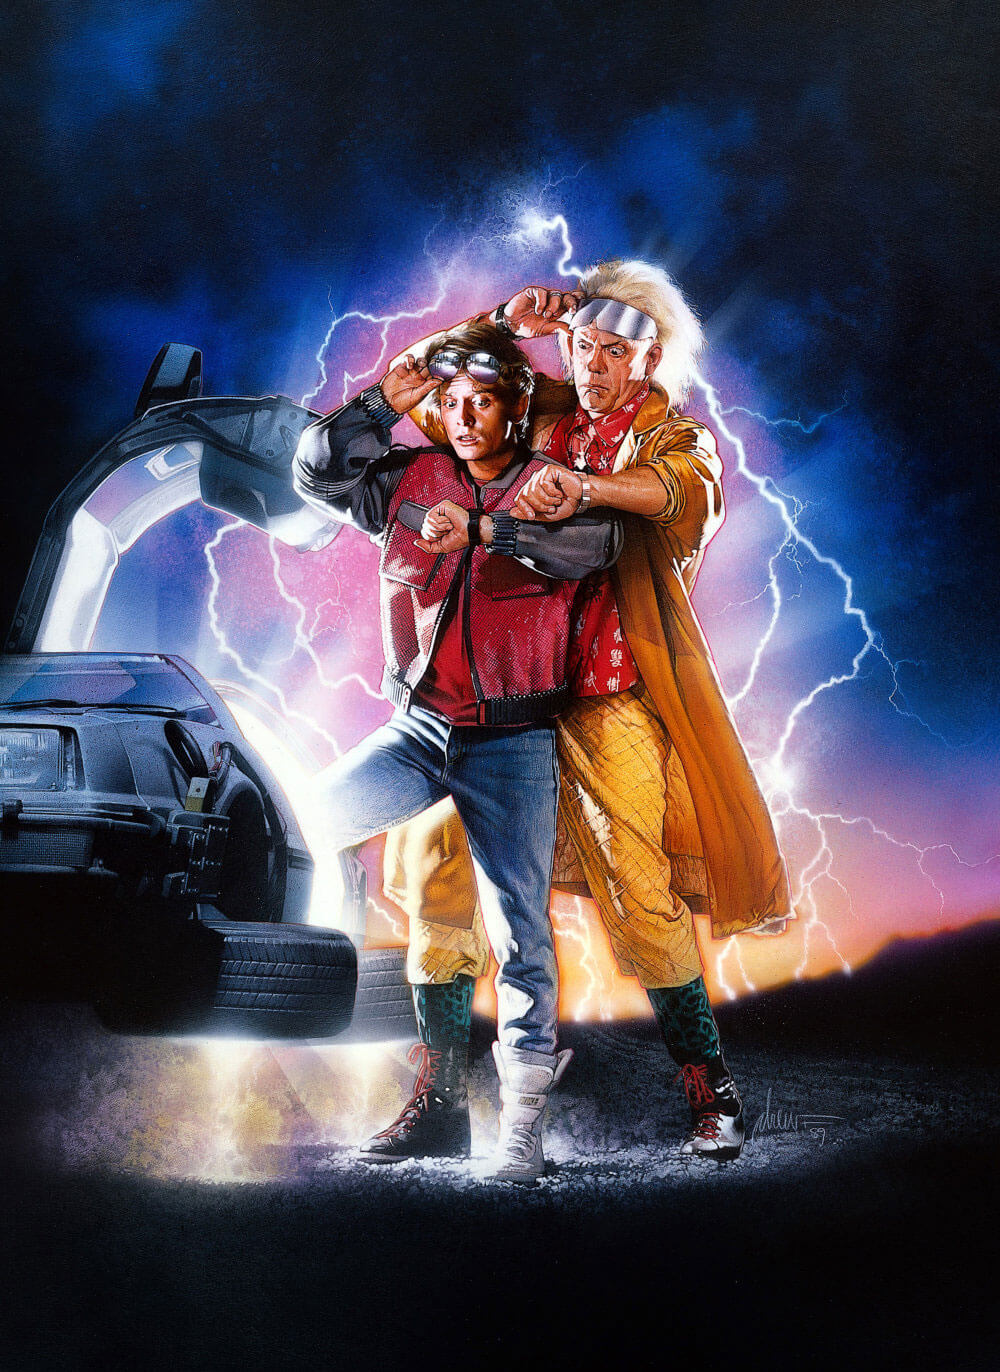 drew-struzan-oldskull-back-to-the-future-2